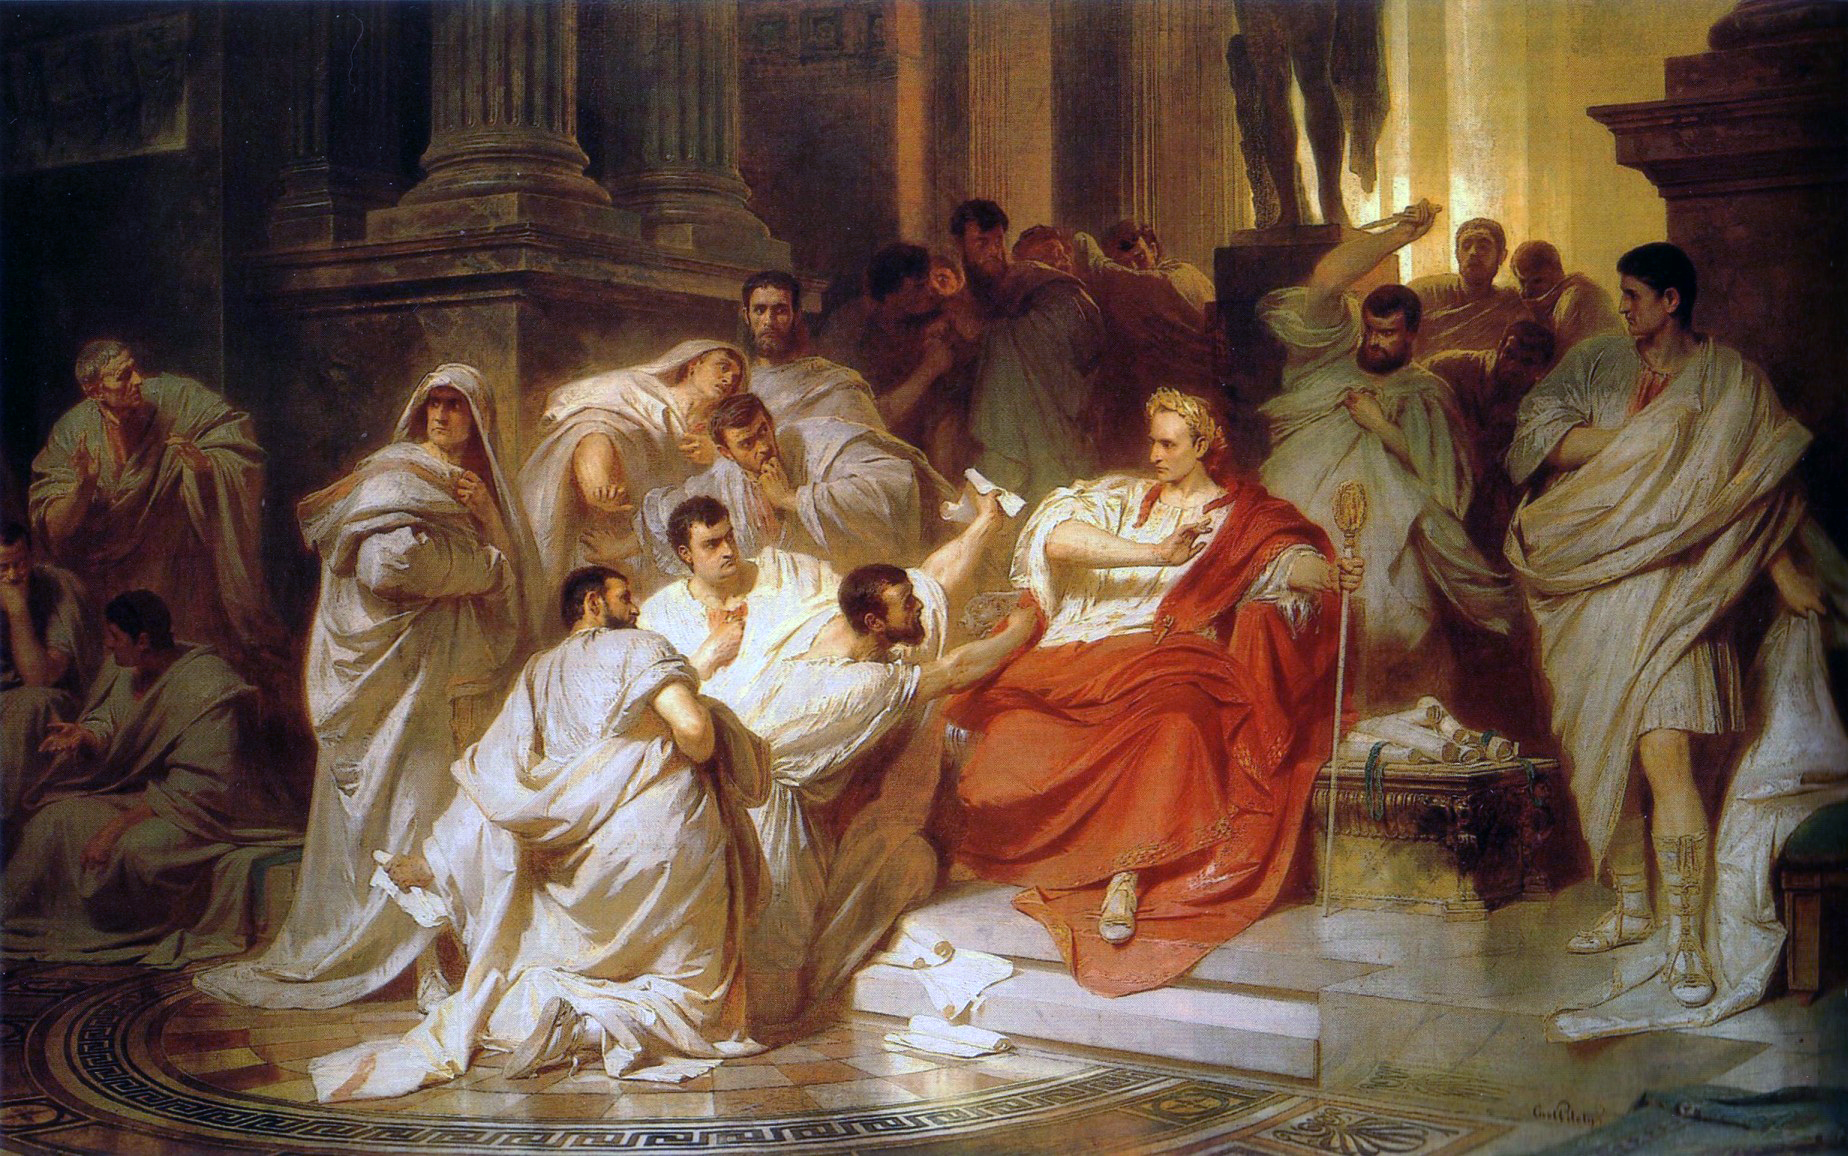 the creation of the roman empire the rise of octavian augustus and the aftermath of his death The time augustus took over the leadership of the roman empire is considered a time of growth in spite of the different internal challenges that threatened the stability of the empire the civil.